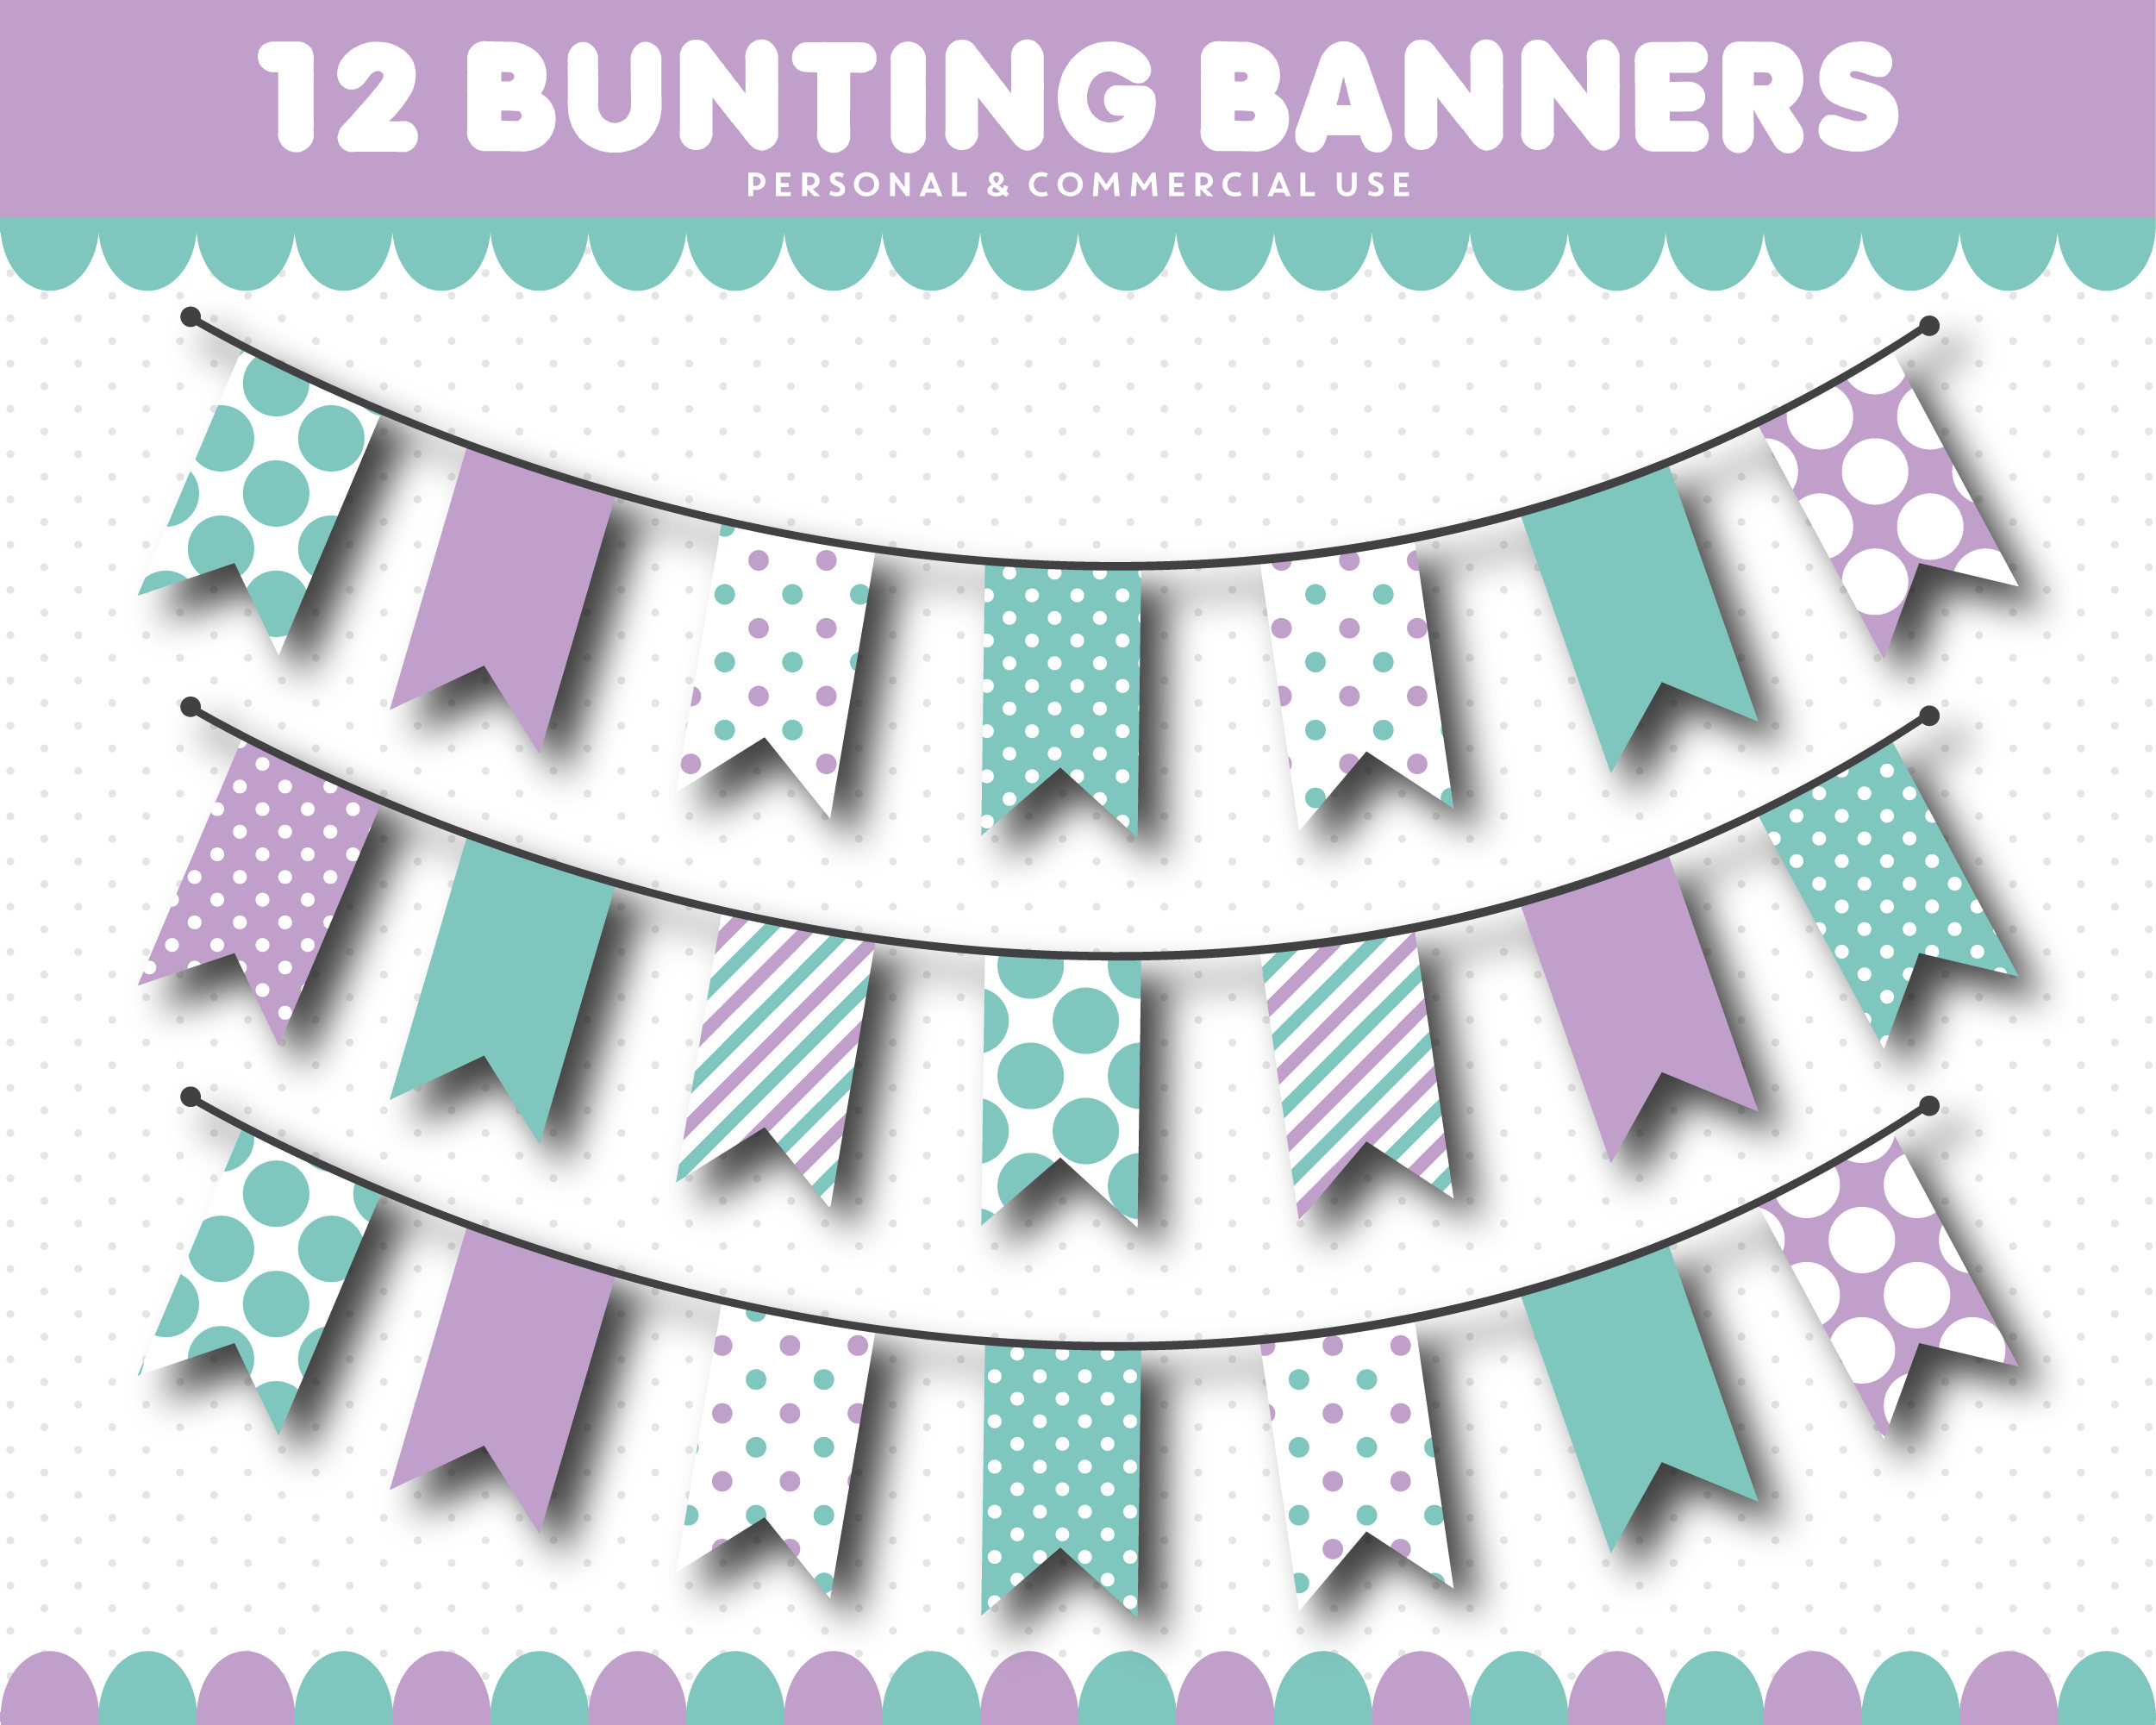 Pendent clipart festival banner Bunting This a flags Purple